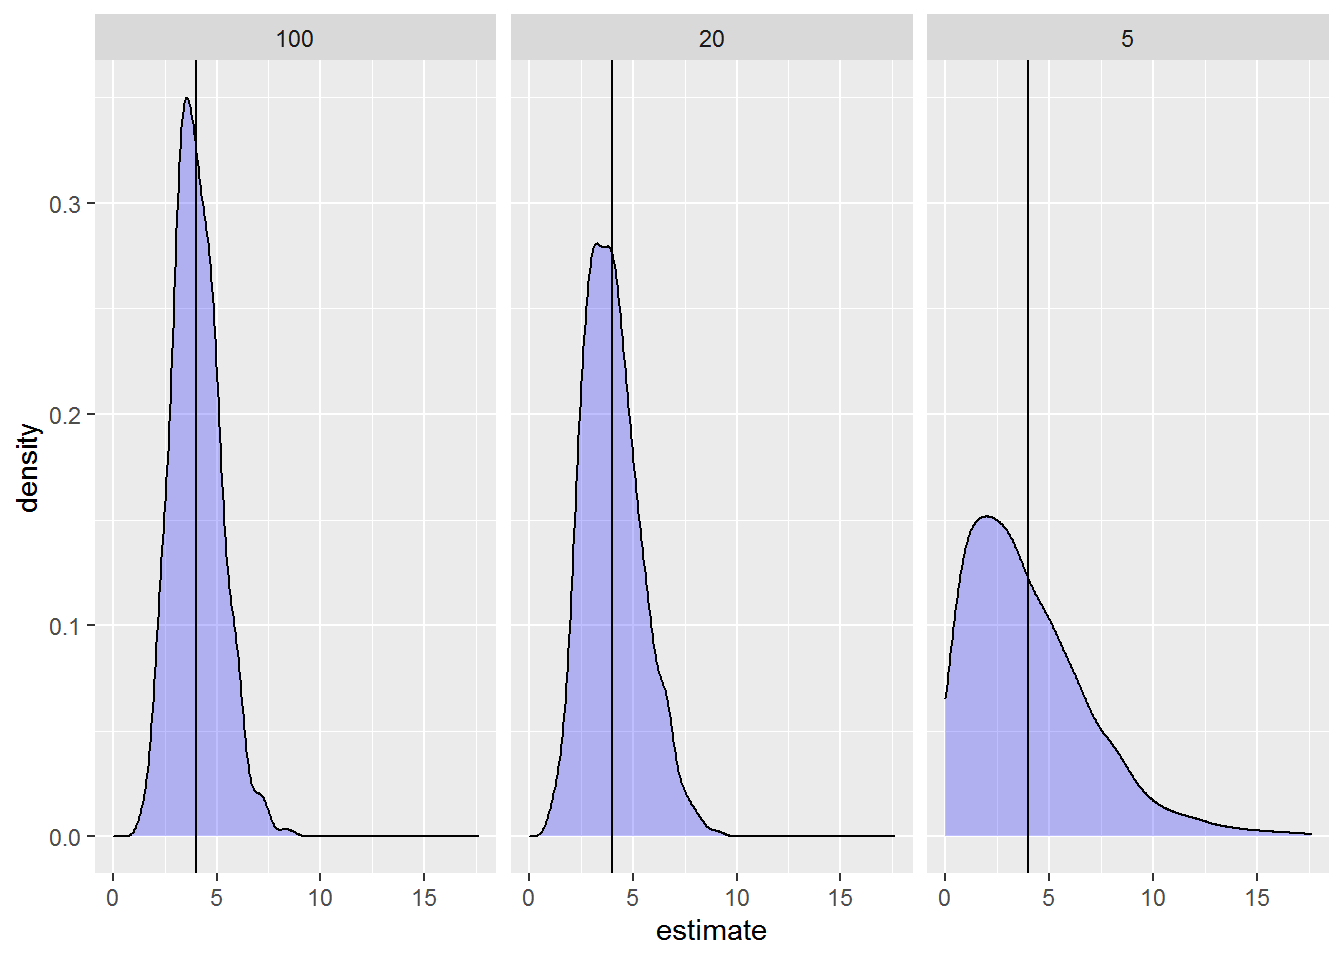 Simulate! Simulate! - Part 2: A linear mixed model